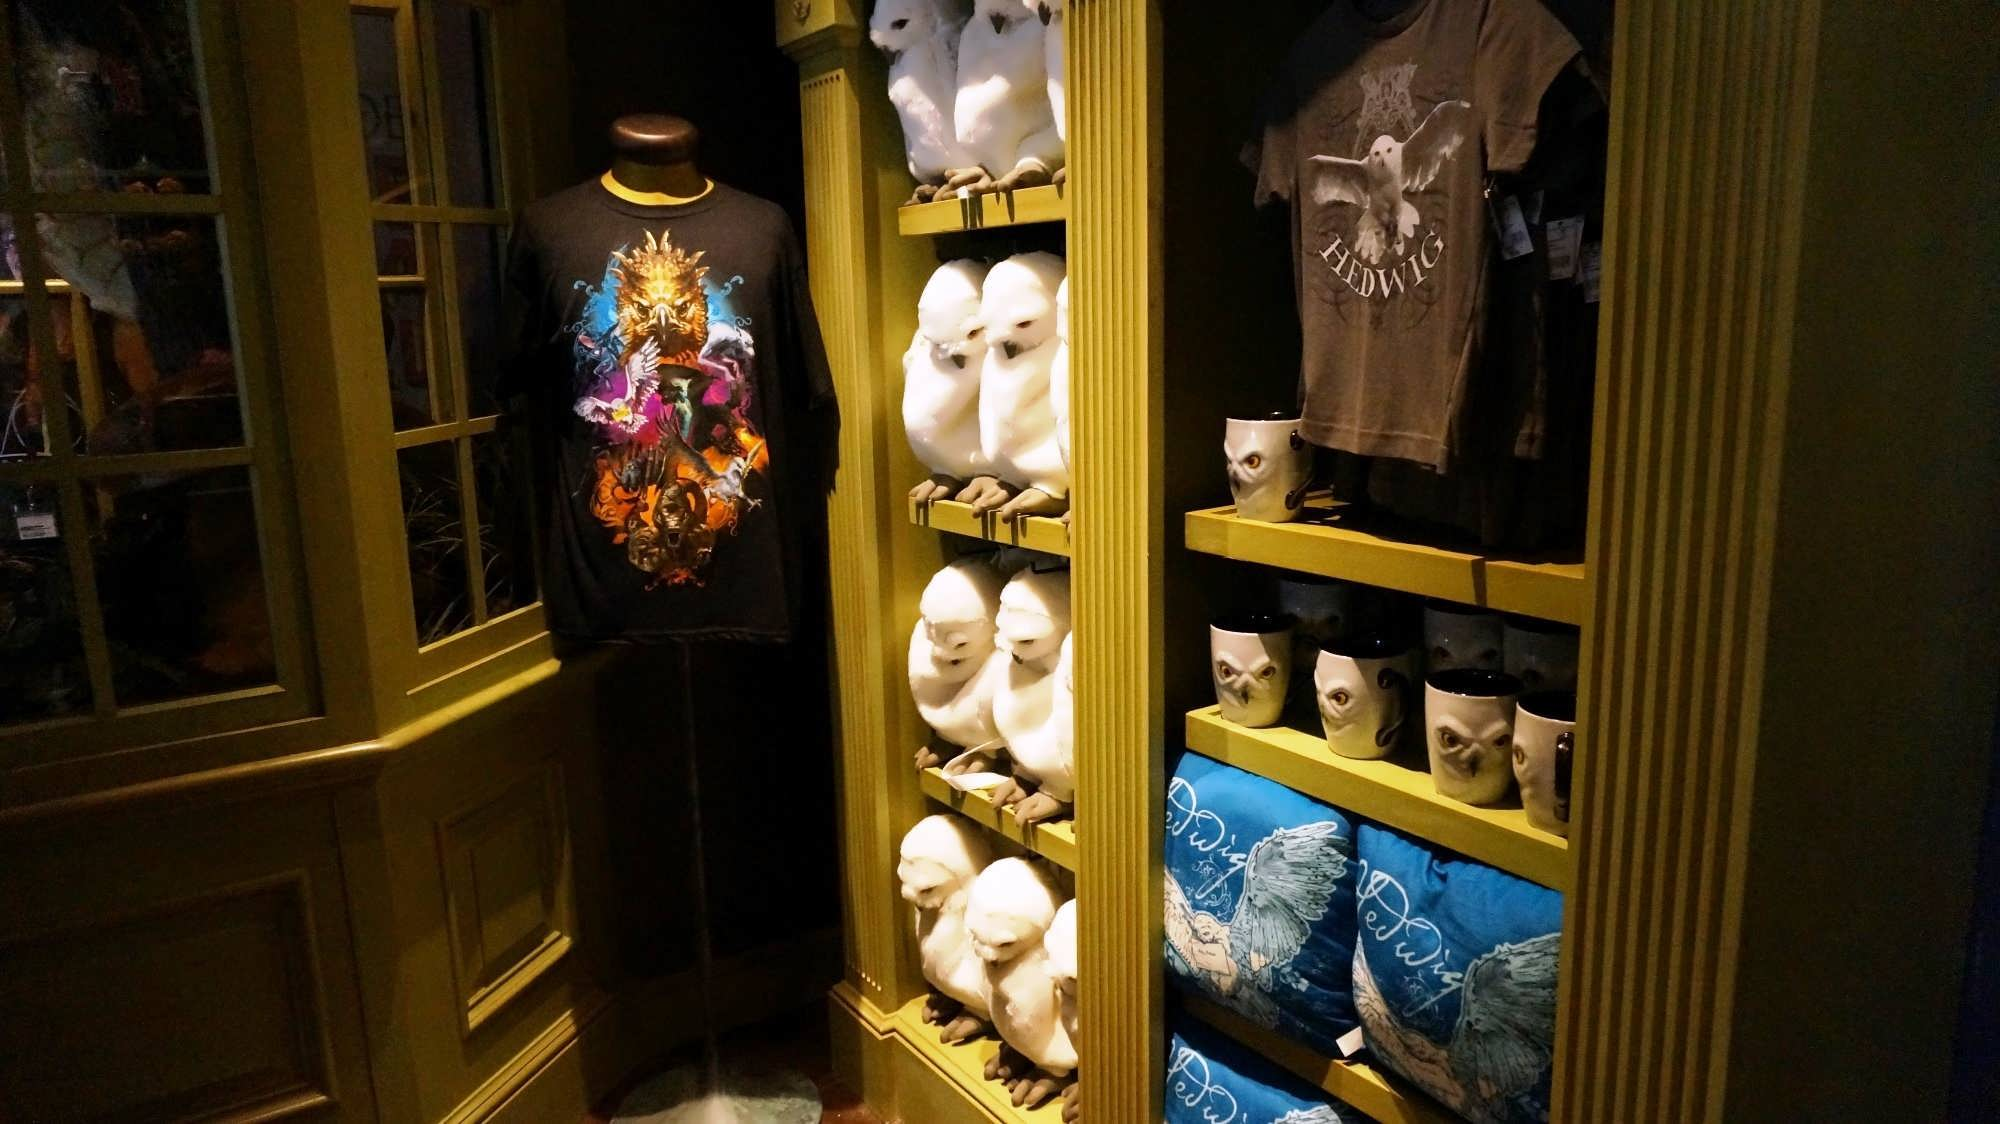 Magical Menagerie merchandise at the Wizarding World of Harry Potter - Diagon Alley.